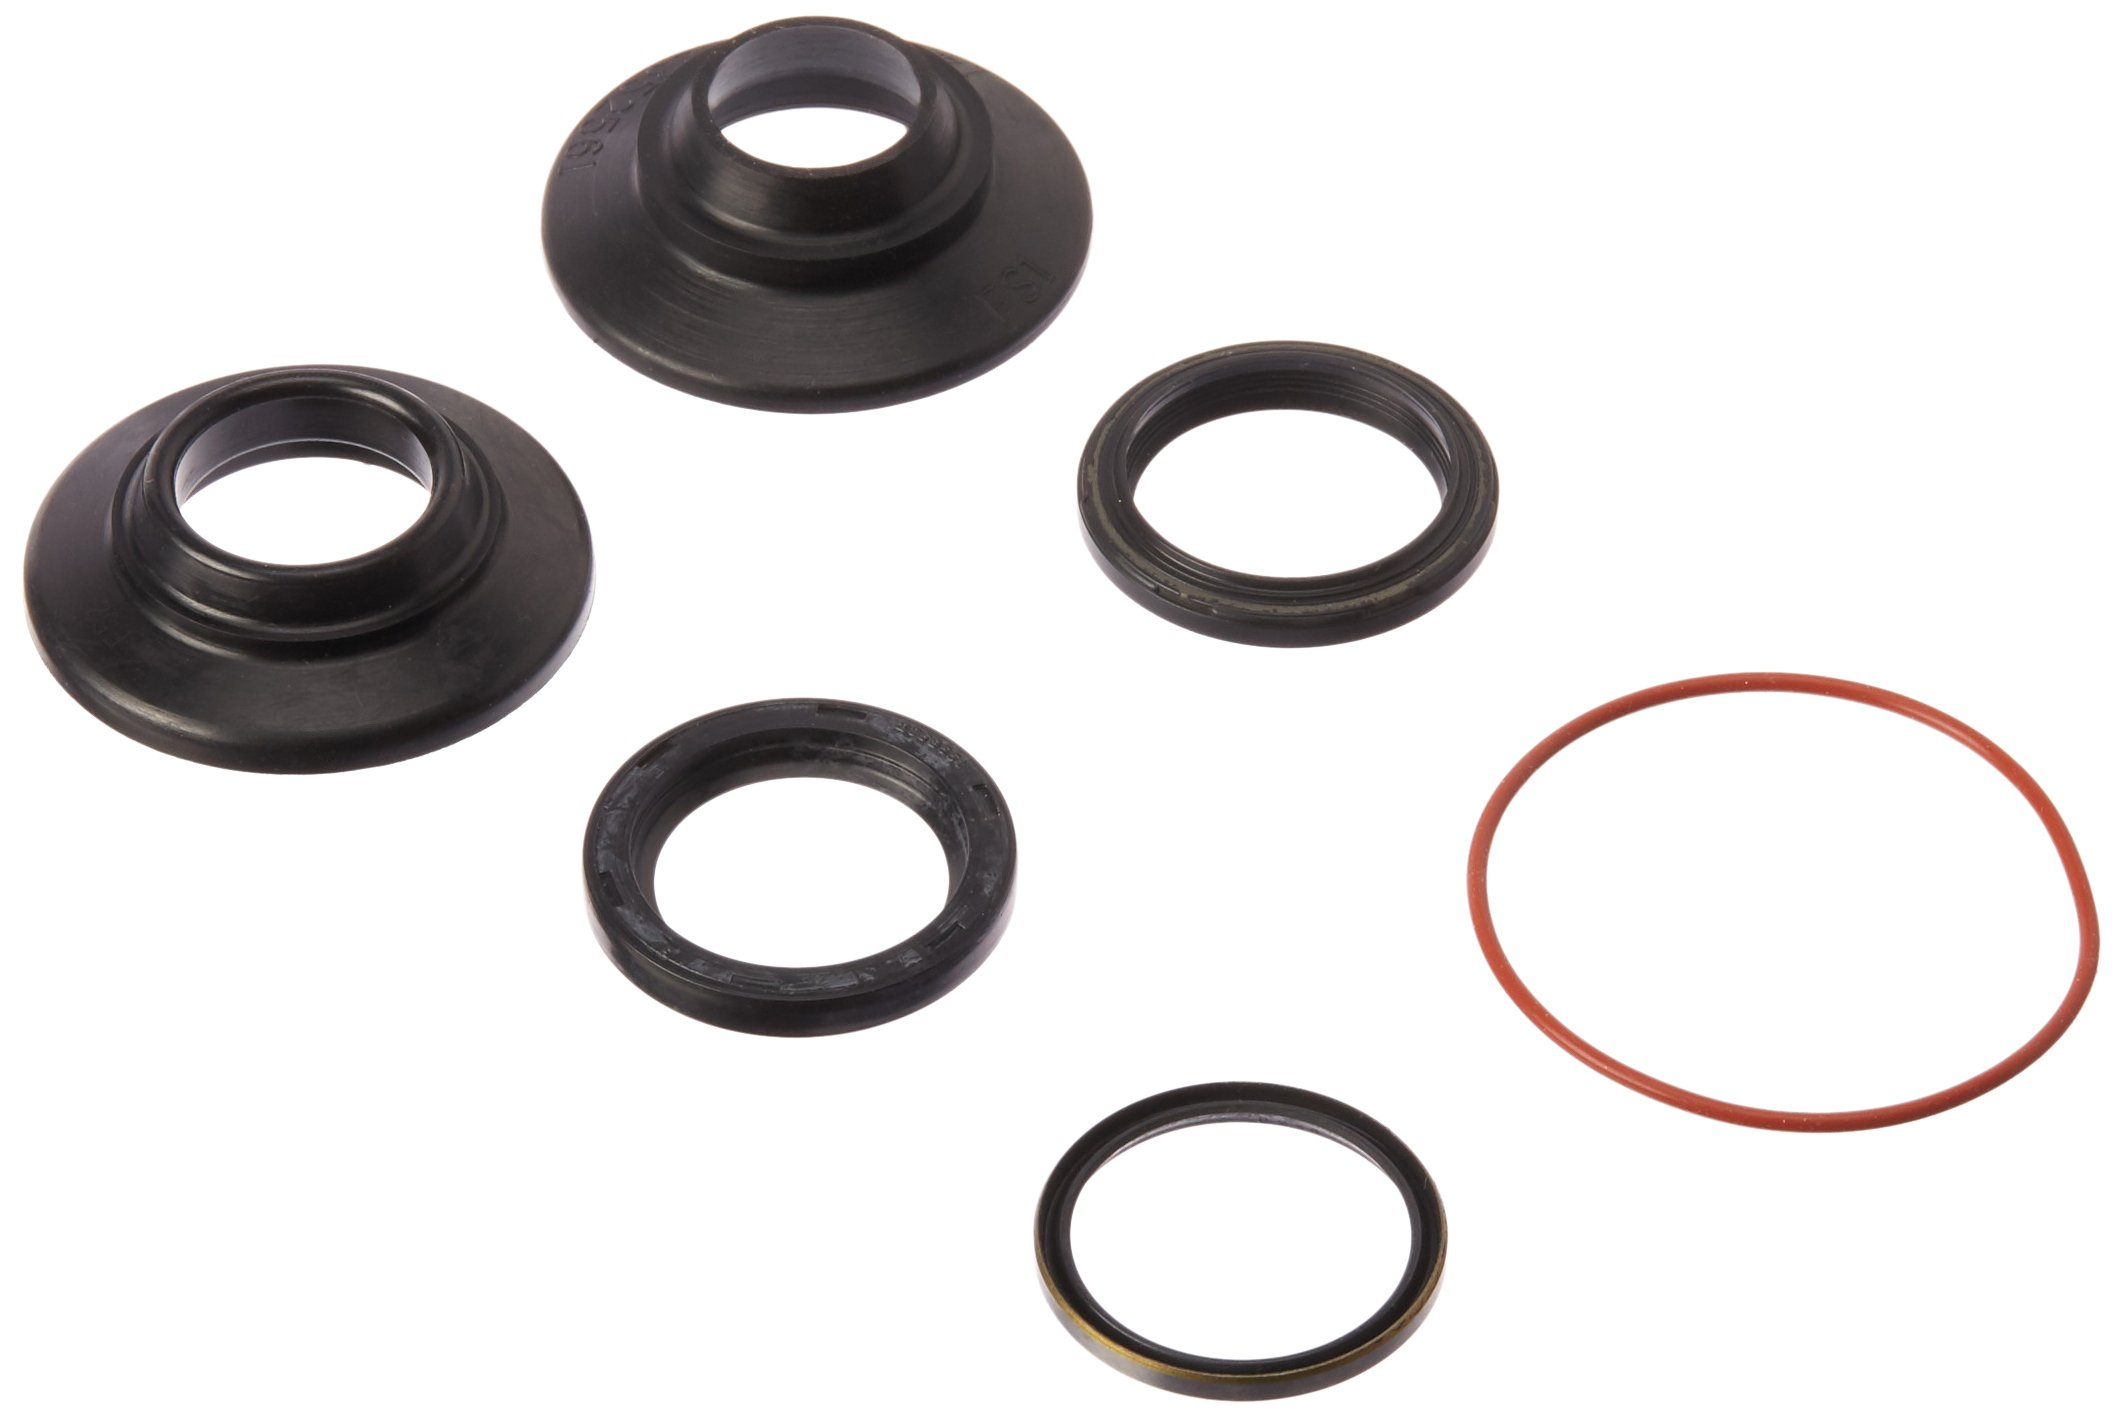 R. H. Sheppard 5544861 Input Shaft Seal Kit by R. H. Sheppard (Image #1)